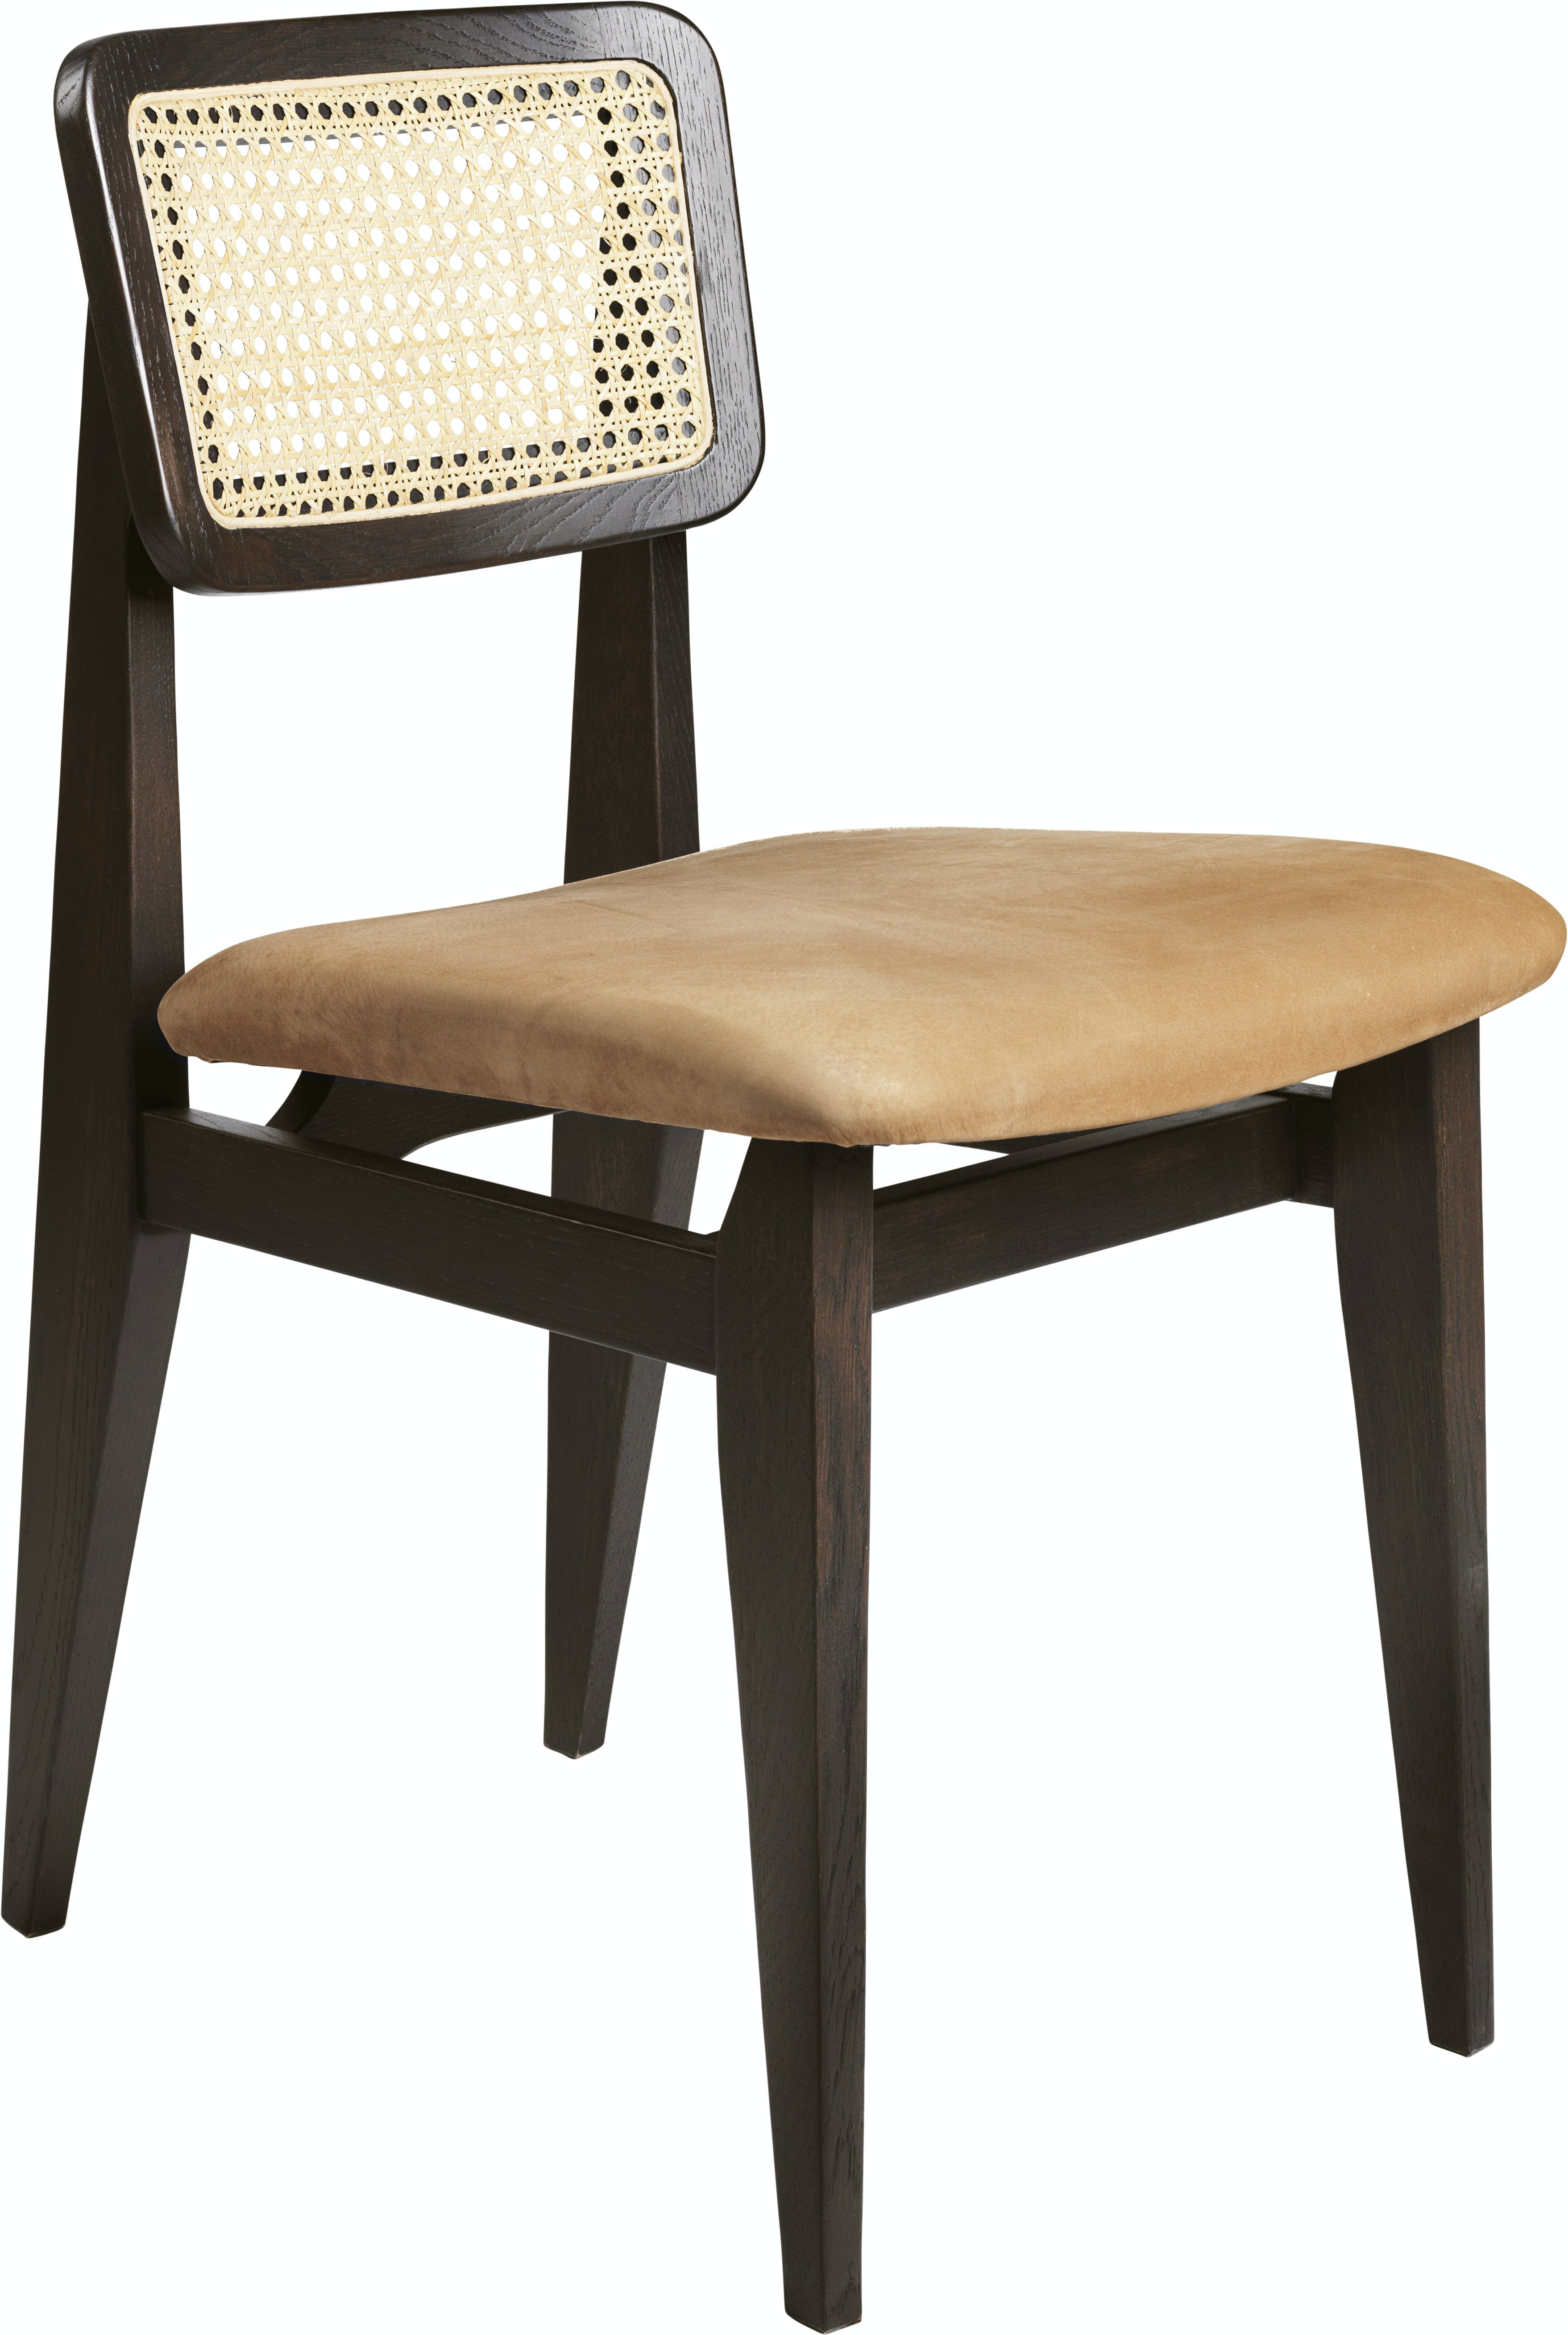 C Chair Dining Chair Wood Seat Upholstered French Cane Brown Black Stained Oak Gubi Nubuck 1709 F3 Q